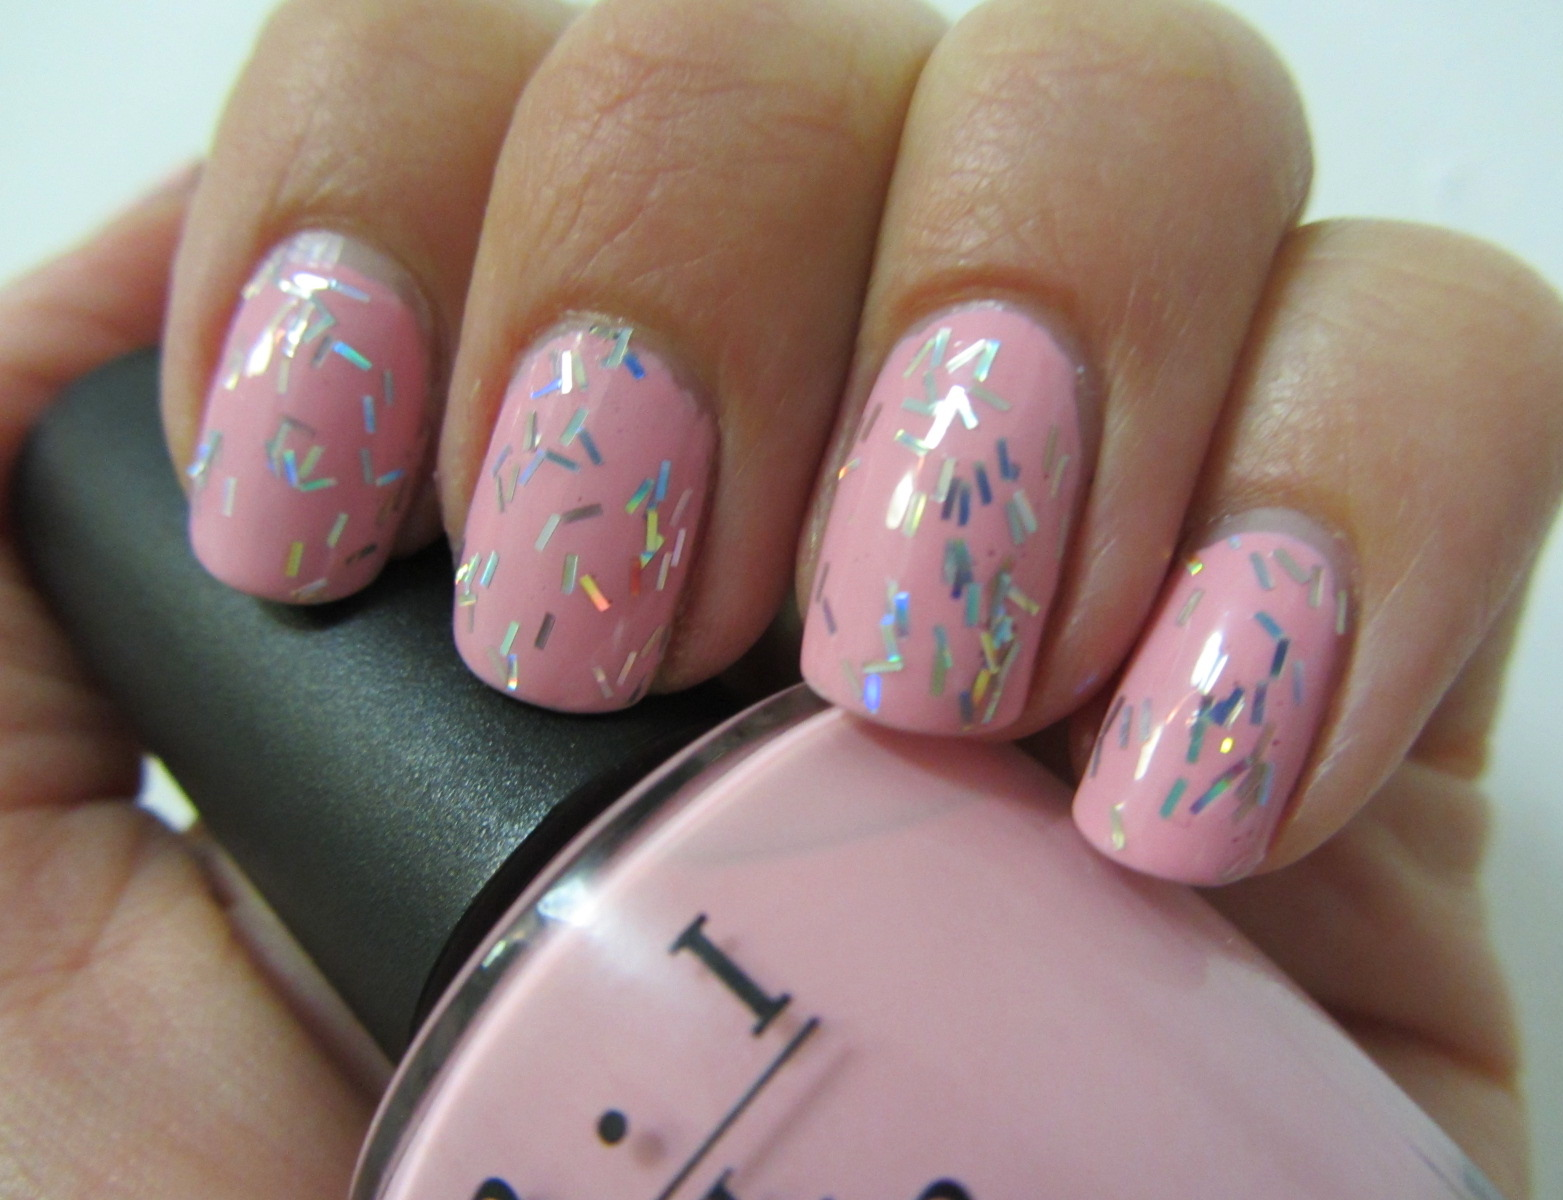 My Nail Polish Obsession: Easter Nails